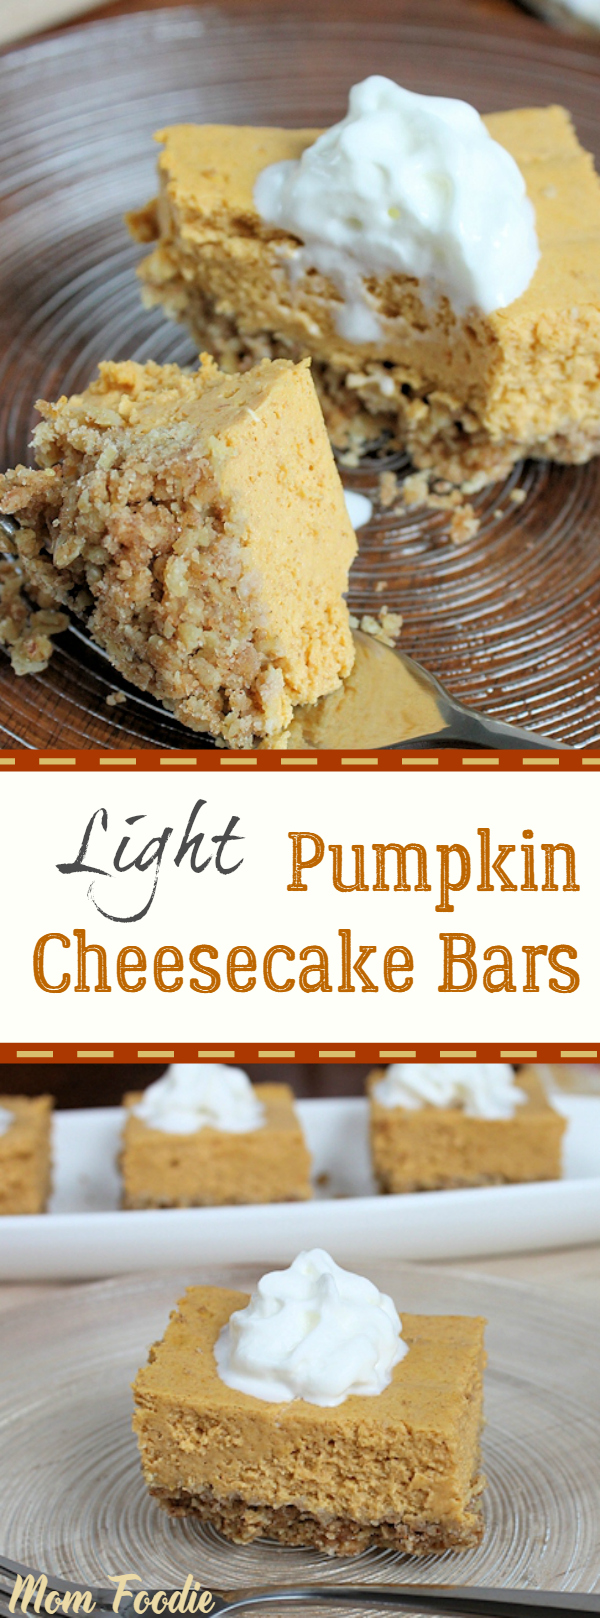 Light Pumpkin Cheesecake Recipe